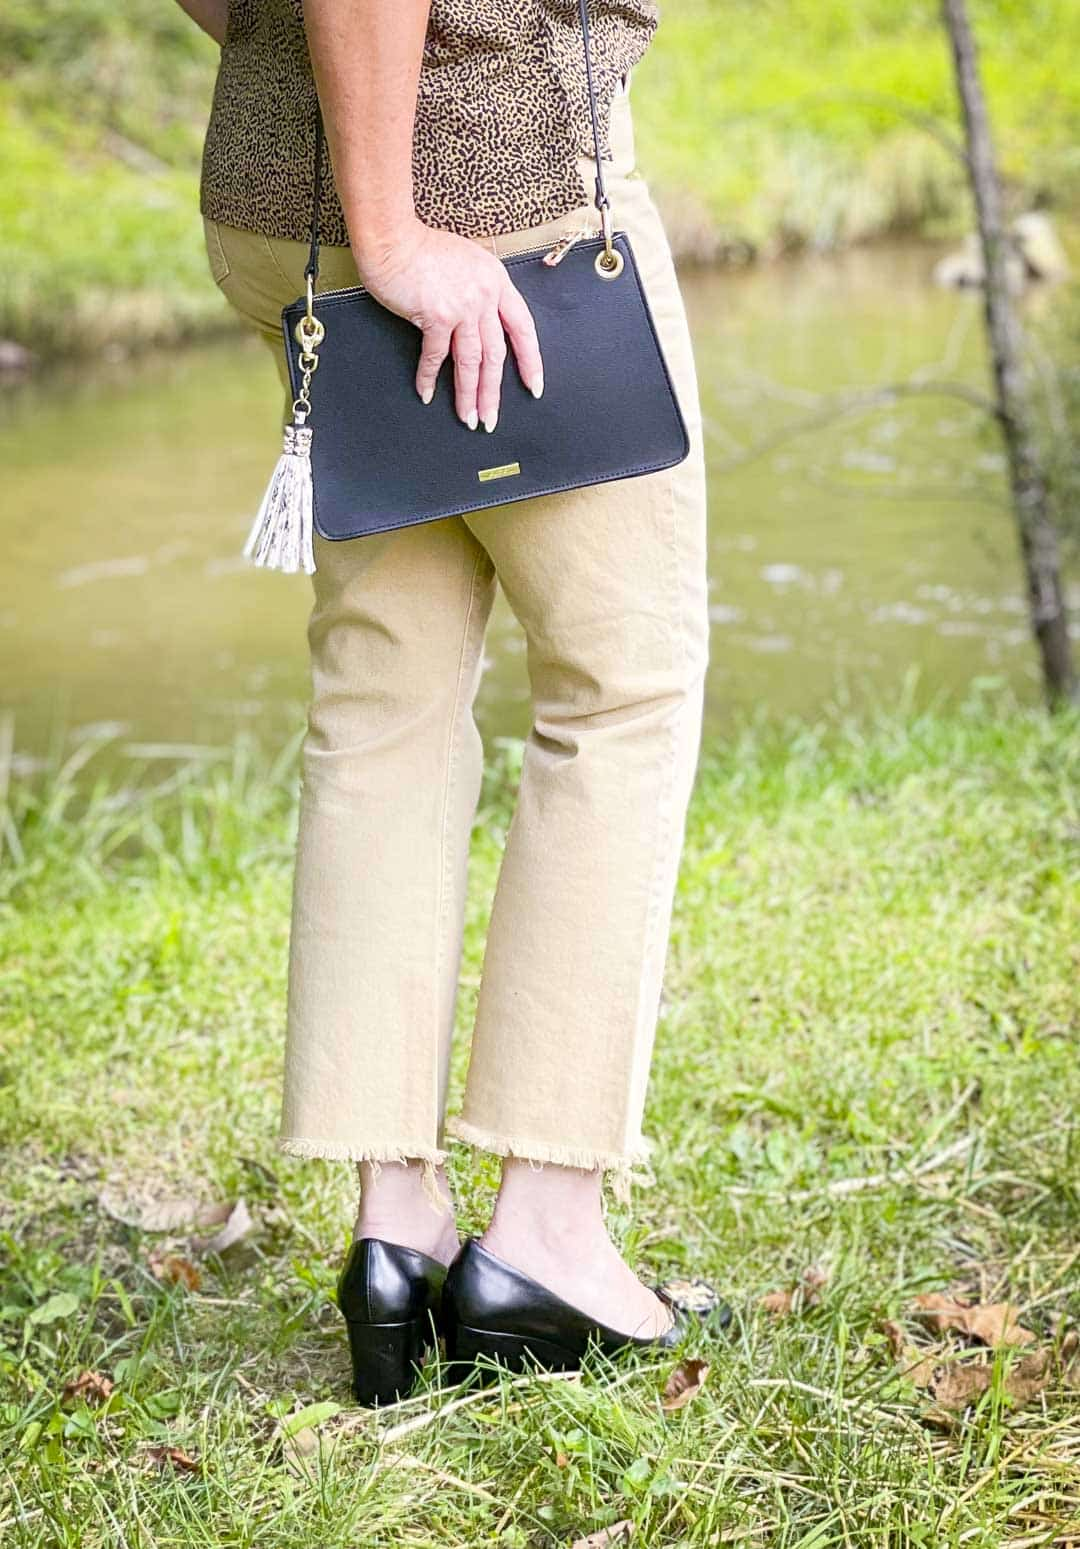 Over 40 Fashion Blogger, Tania Stephens is wearing tan cropped jeans and carrying a black handbag